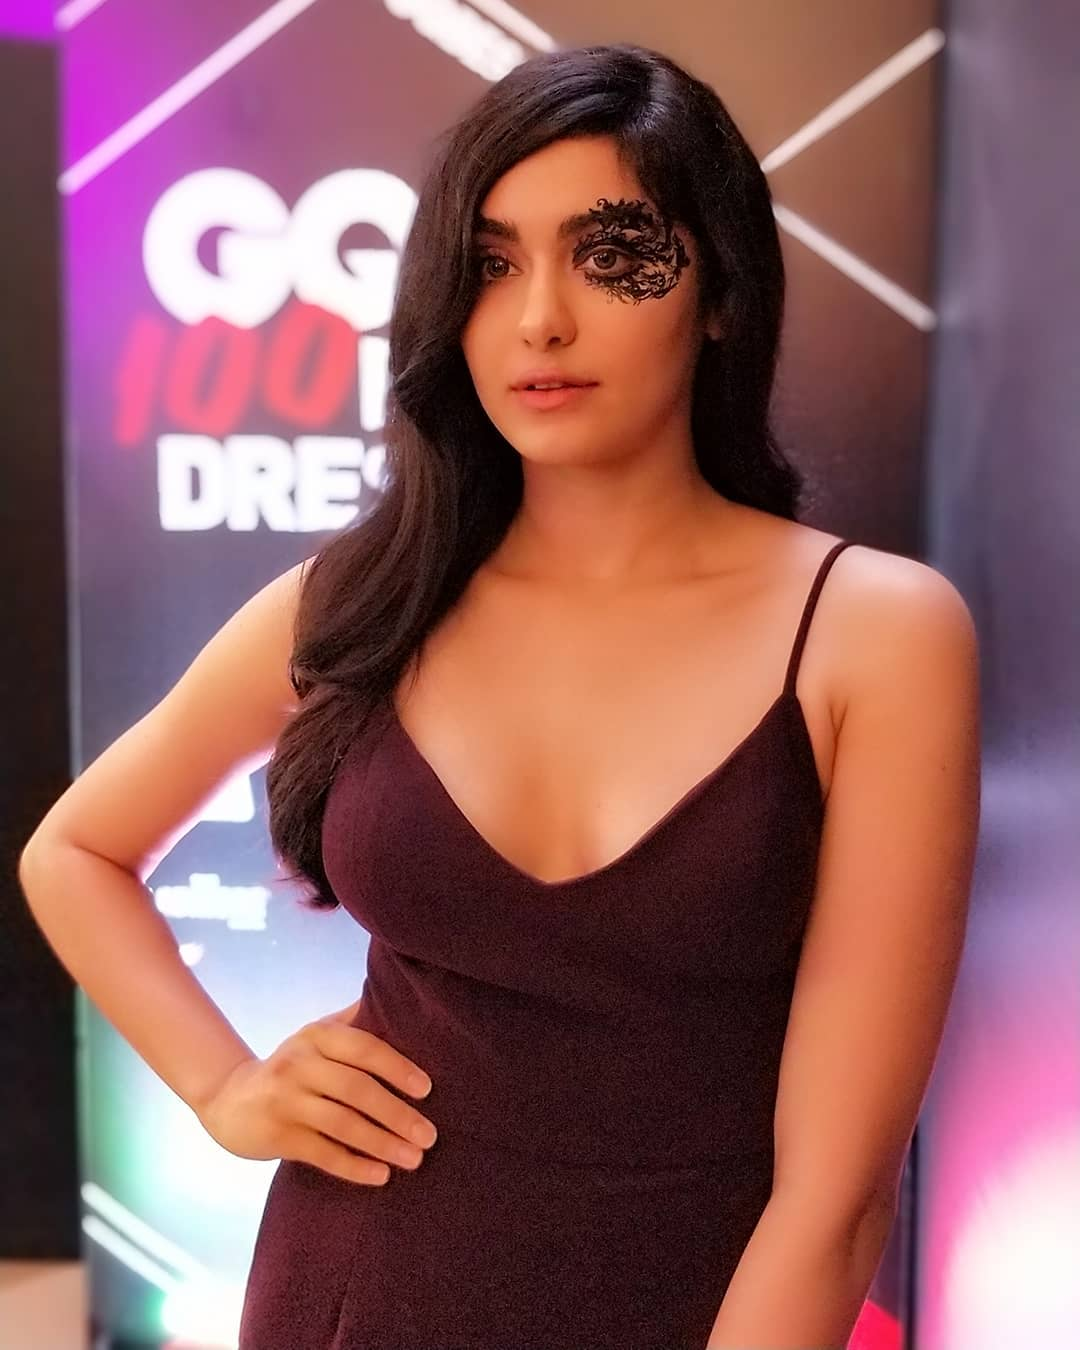 Hot Wallpapers for mobile Adah Sharma